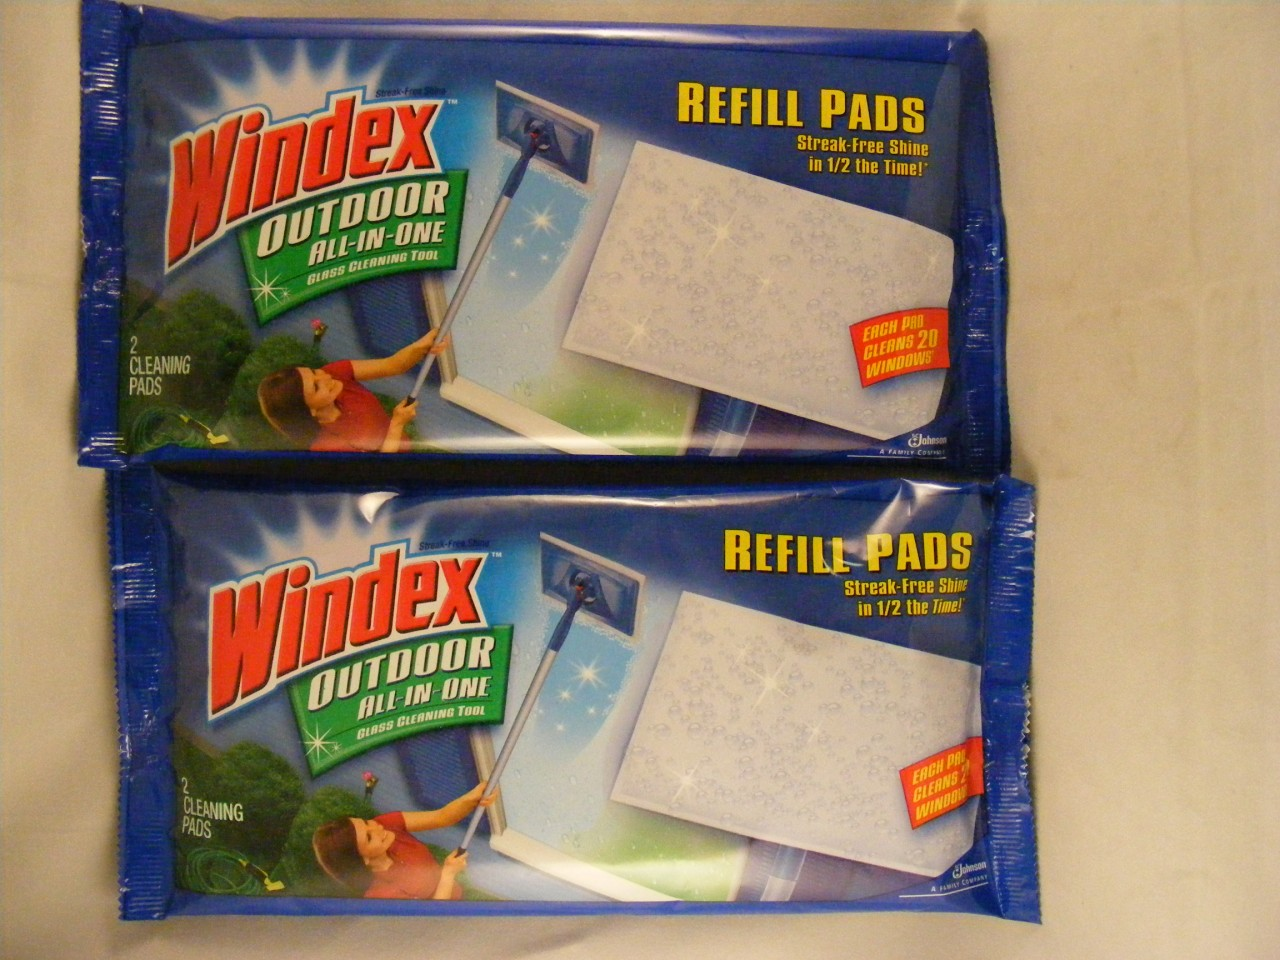 Windex outdoor all in one refill pads coupon